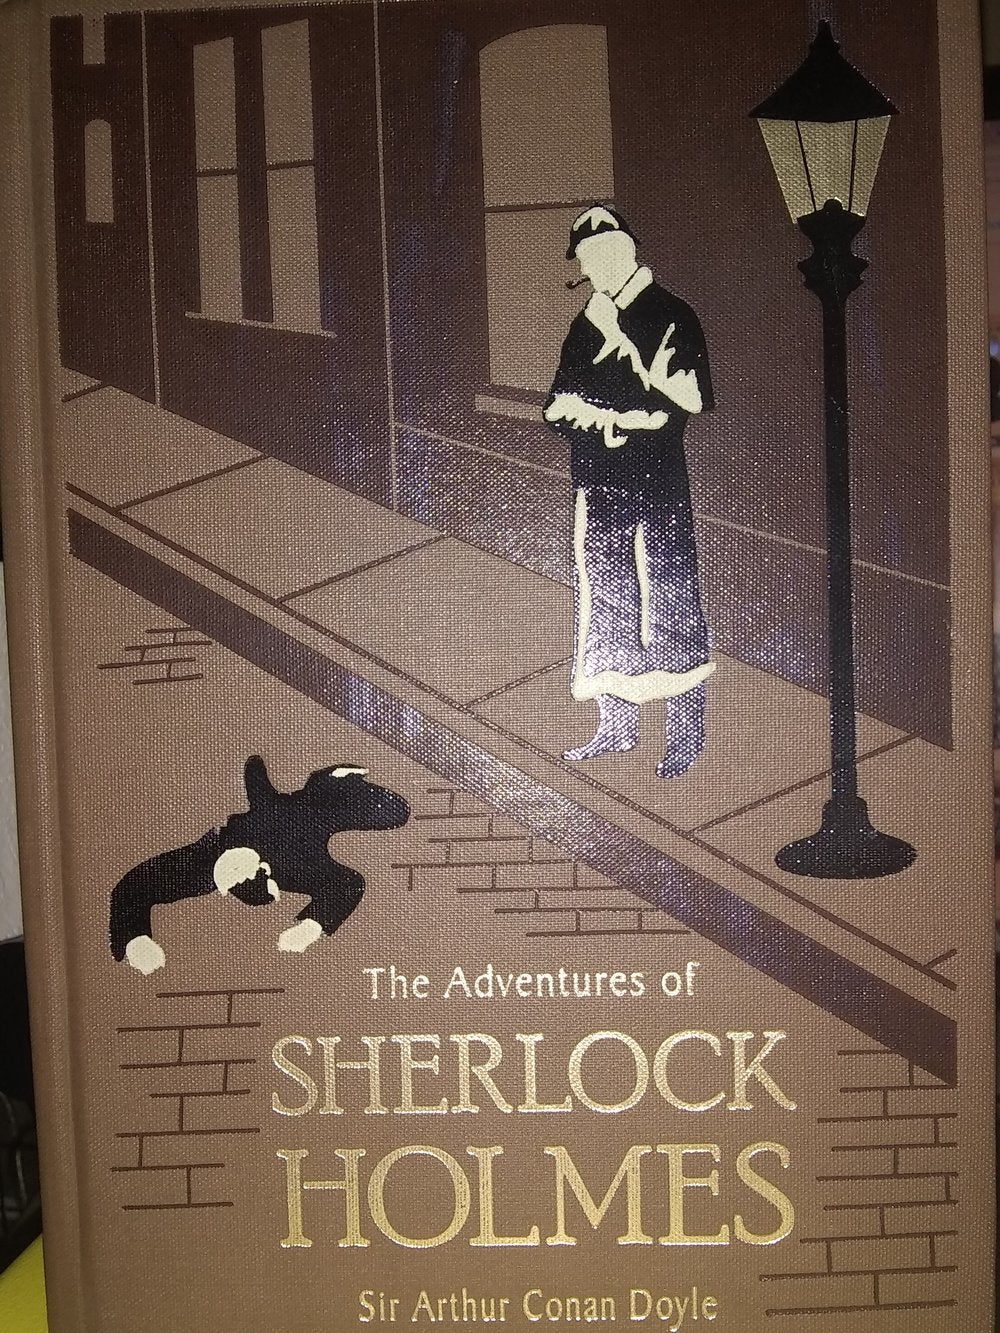 The Adventures of Sherlock Holmes (Sherlock Holmes #3) - Book Crate